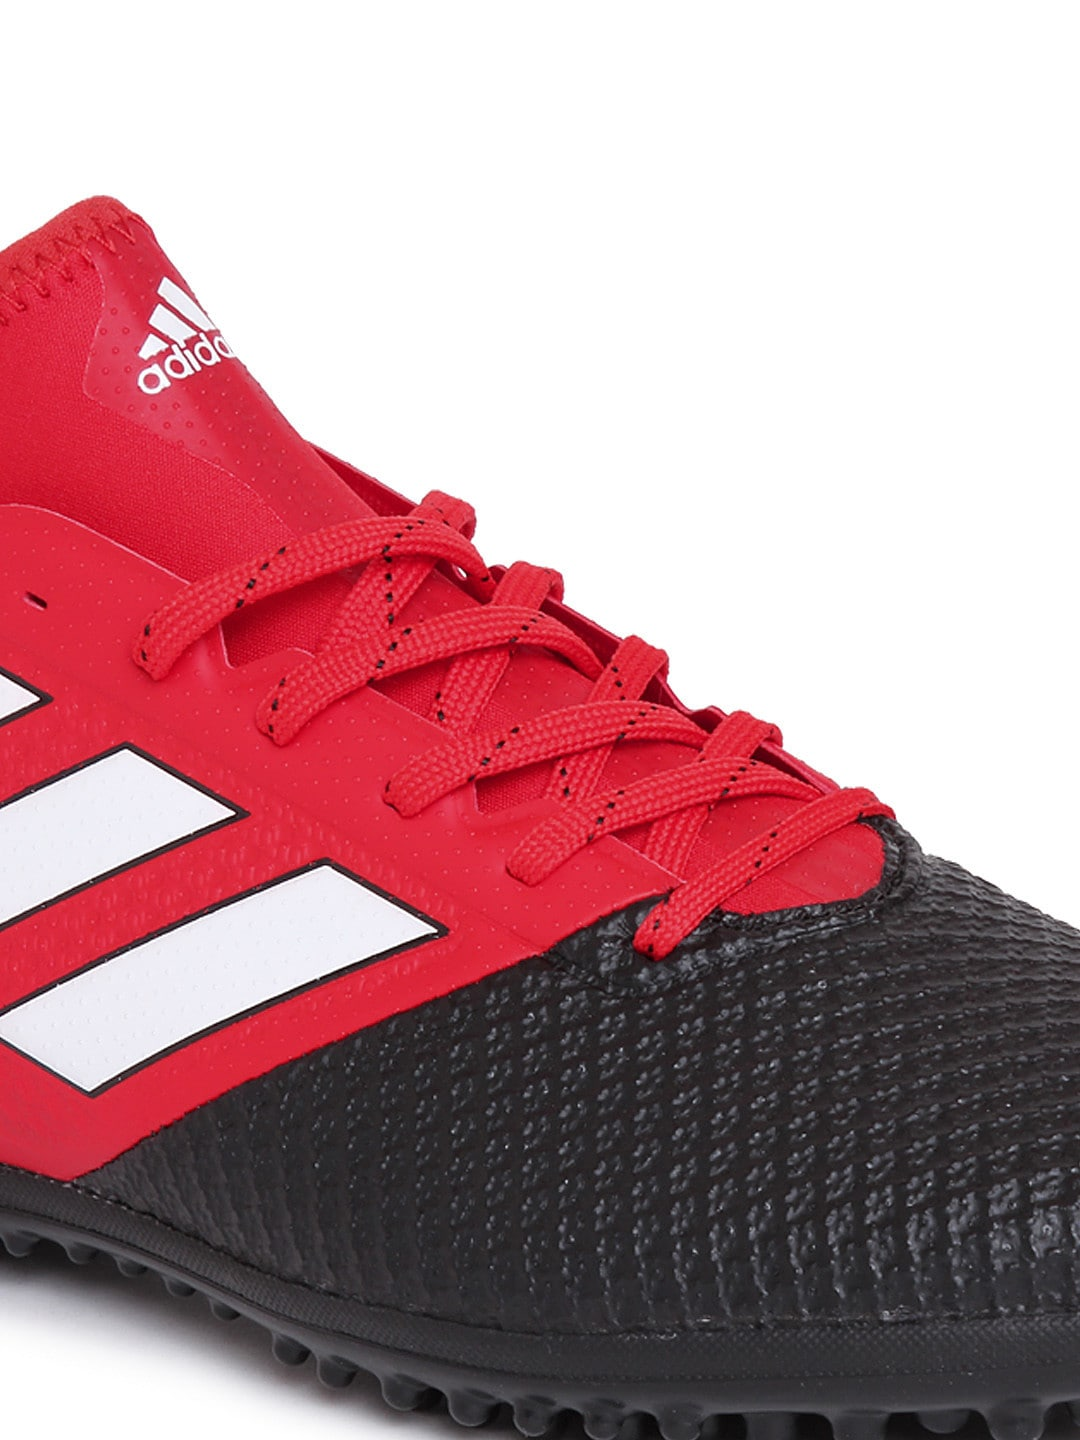 Adidas Shoes 2017 Red